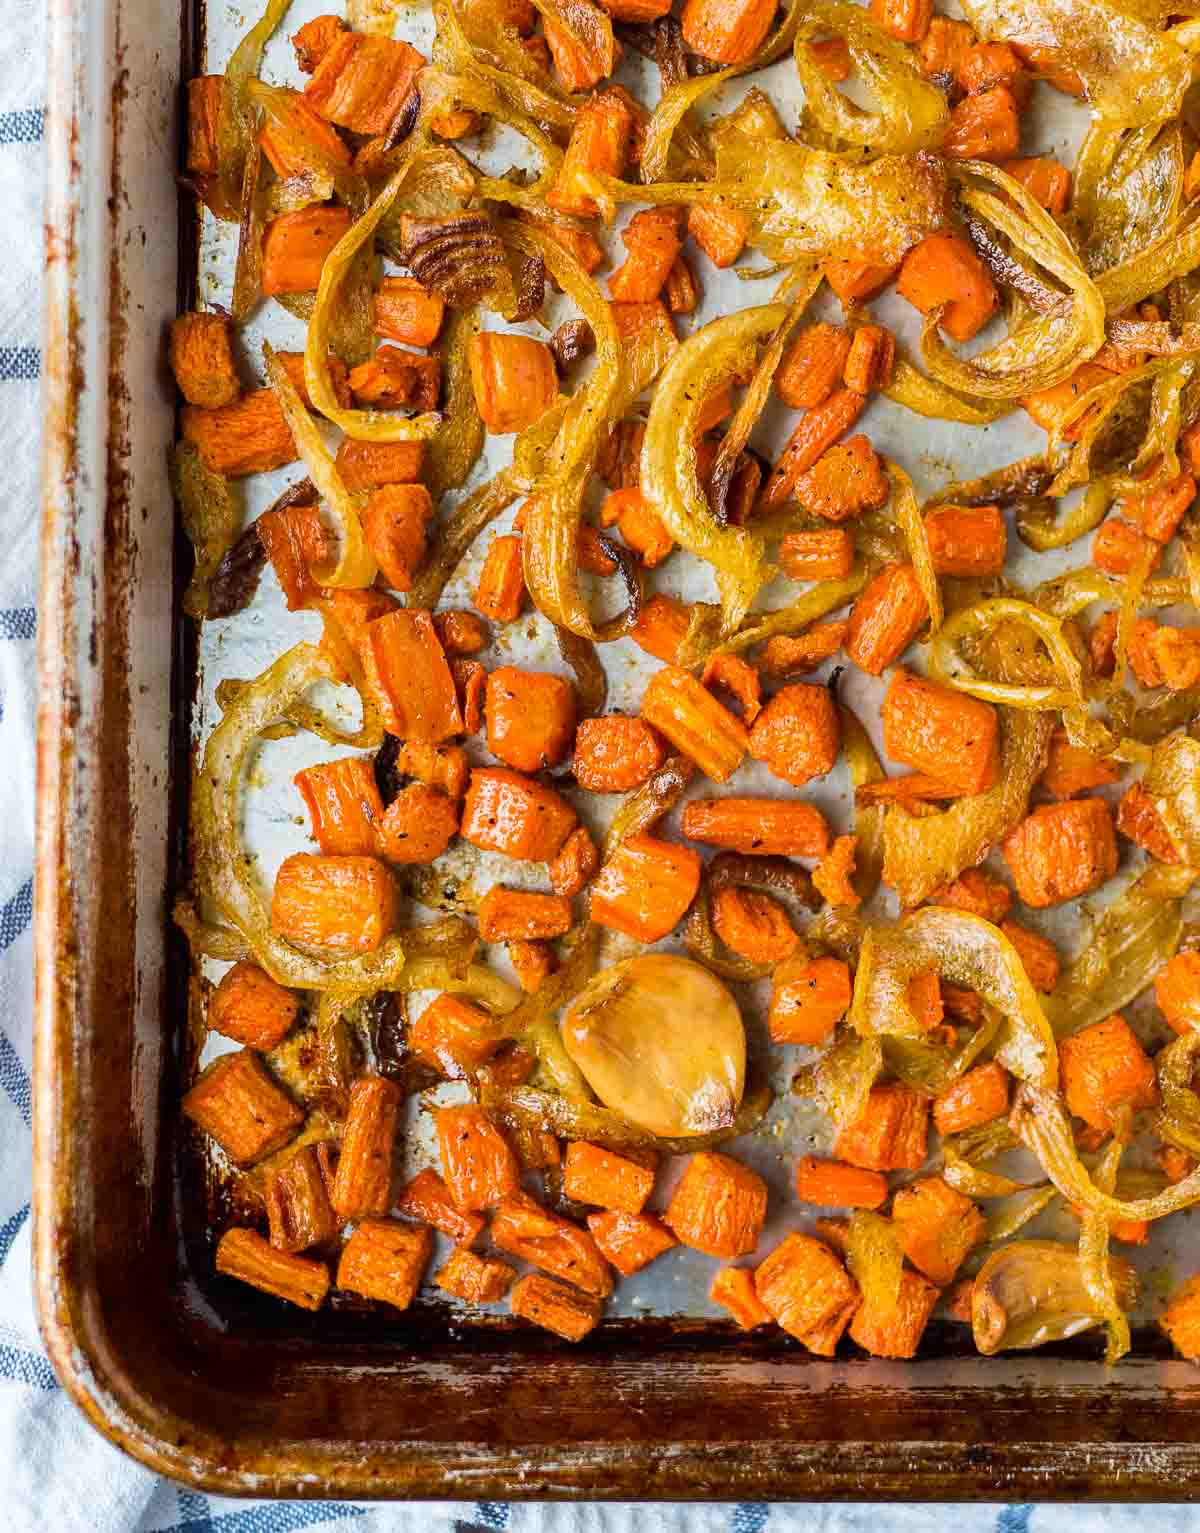 sheet pan with roasted carrots, onions, and garlic